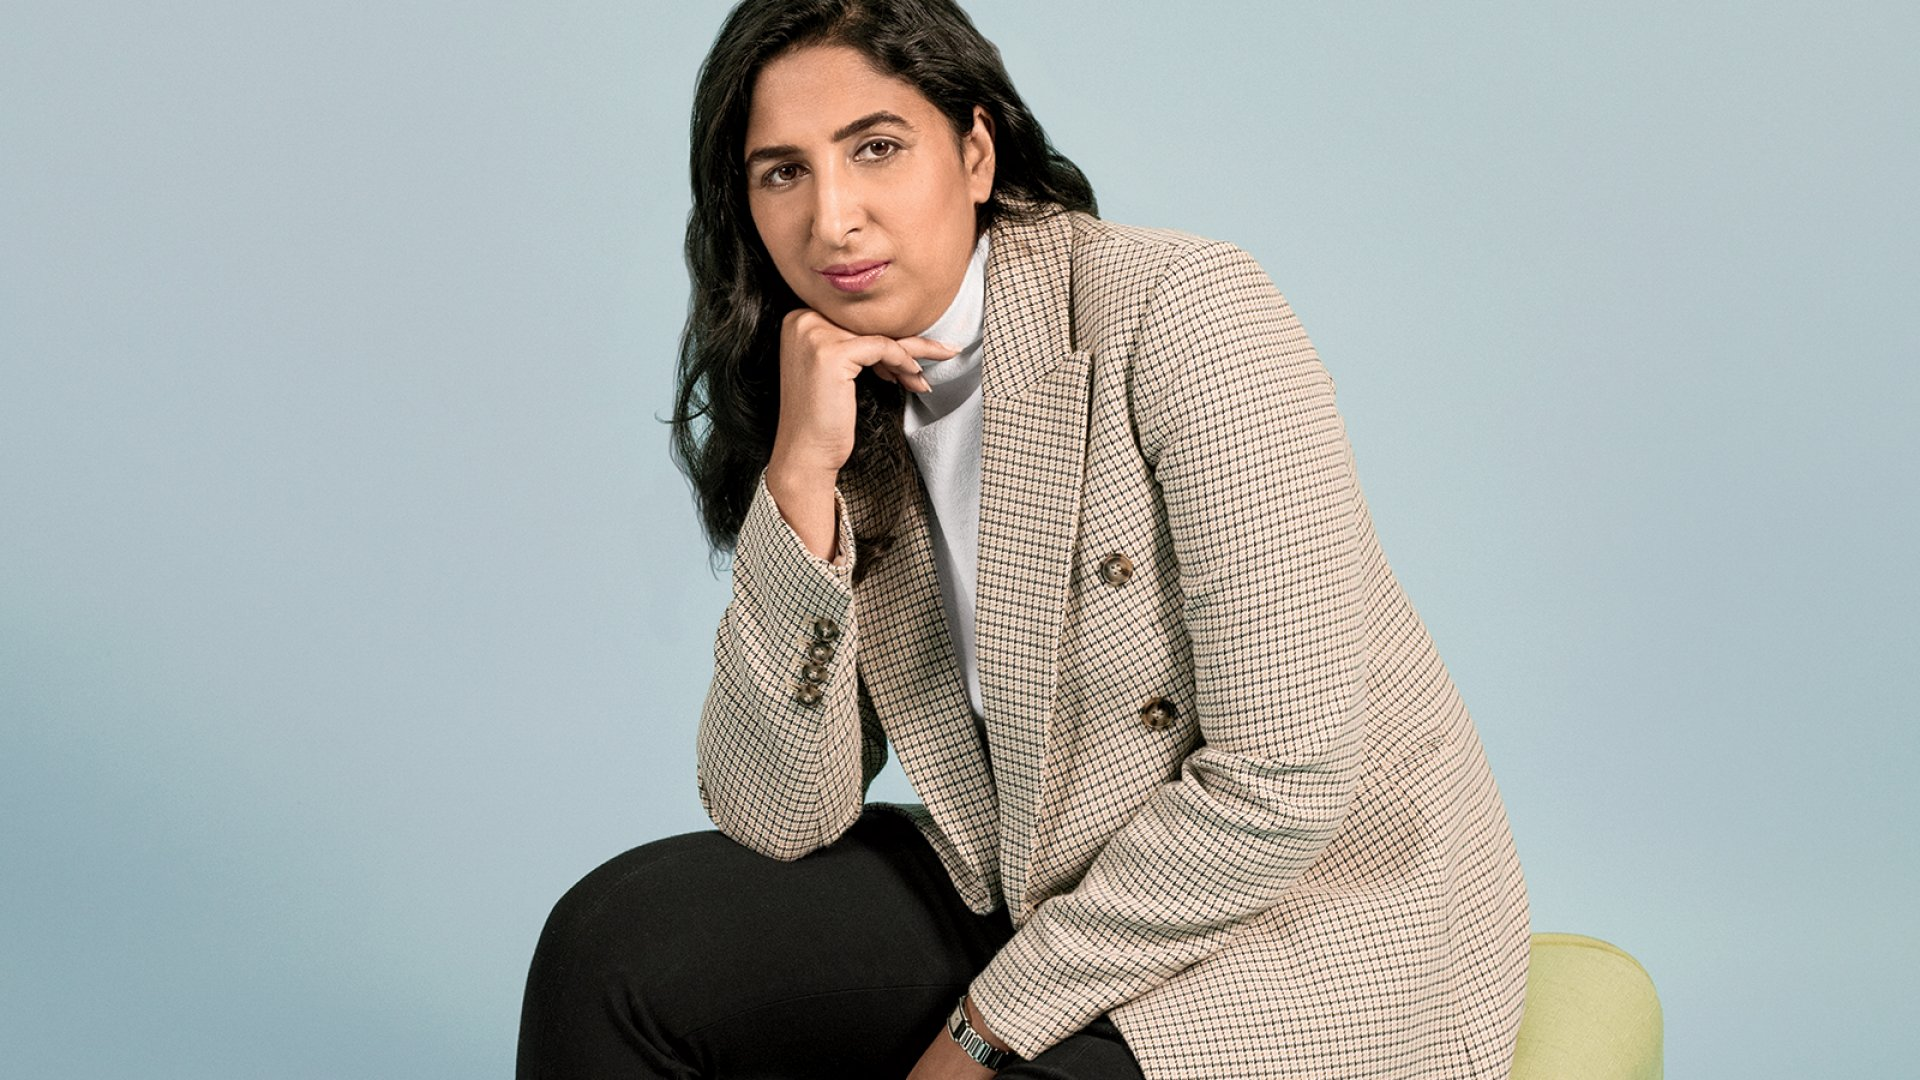 nVision Medical founder Surbhi Sarna, 33, was also featured in <i>Inc.</i>'s Female Founders 100 list in October.